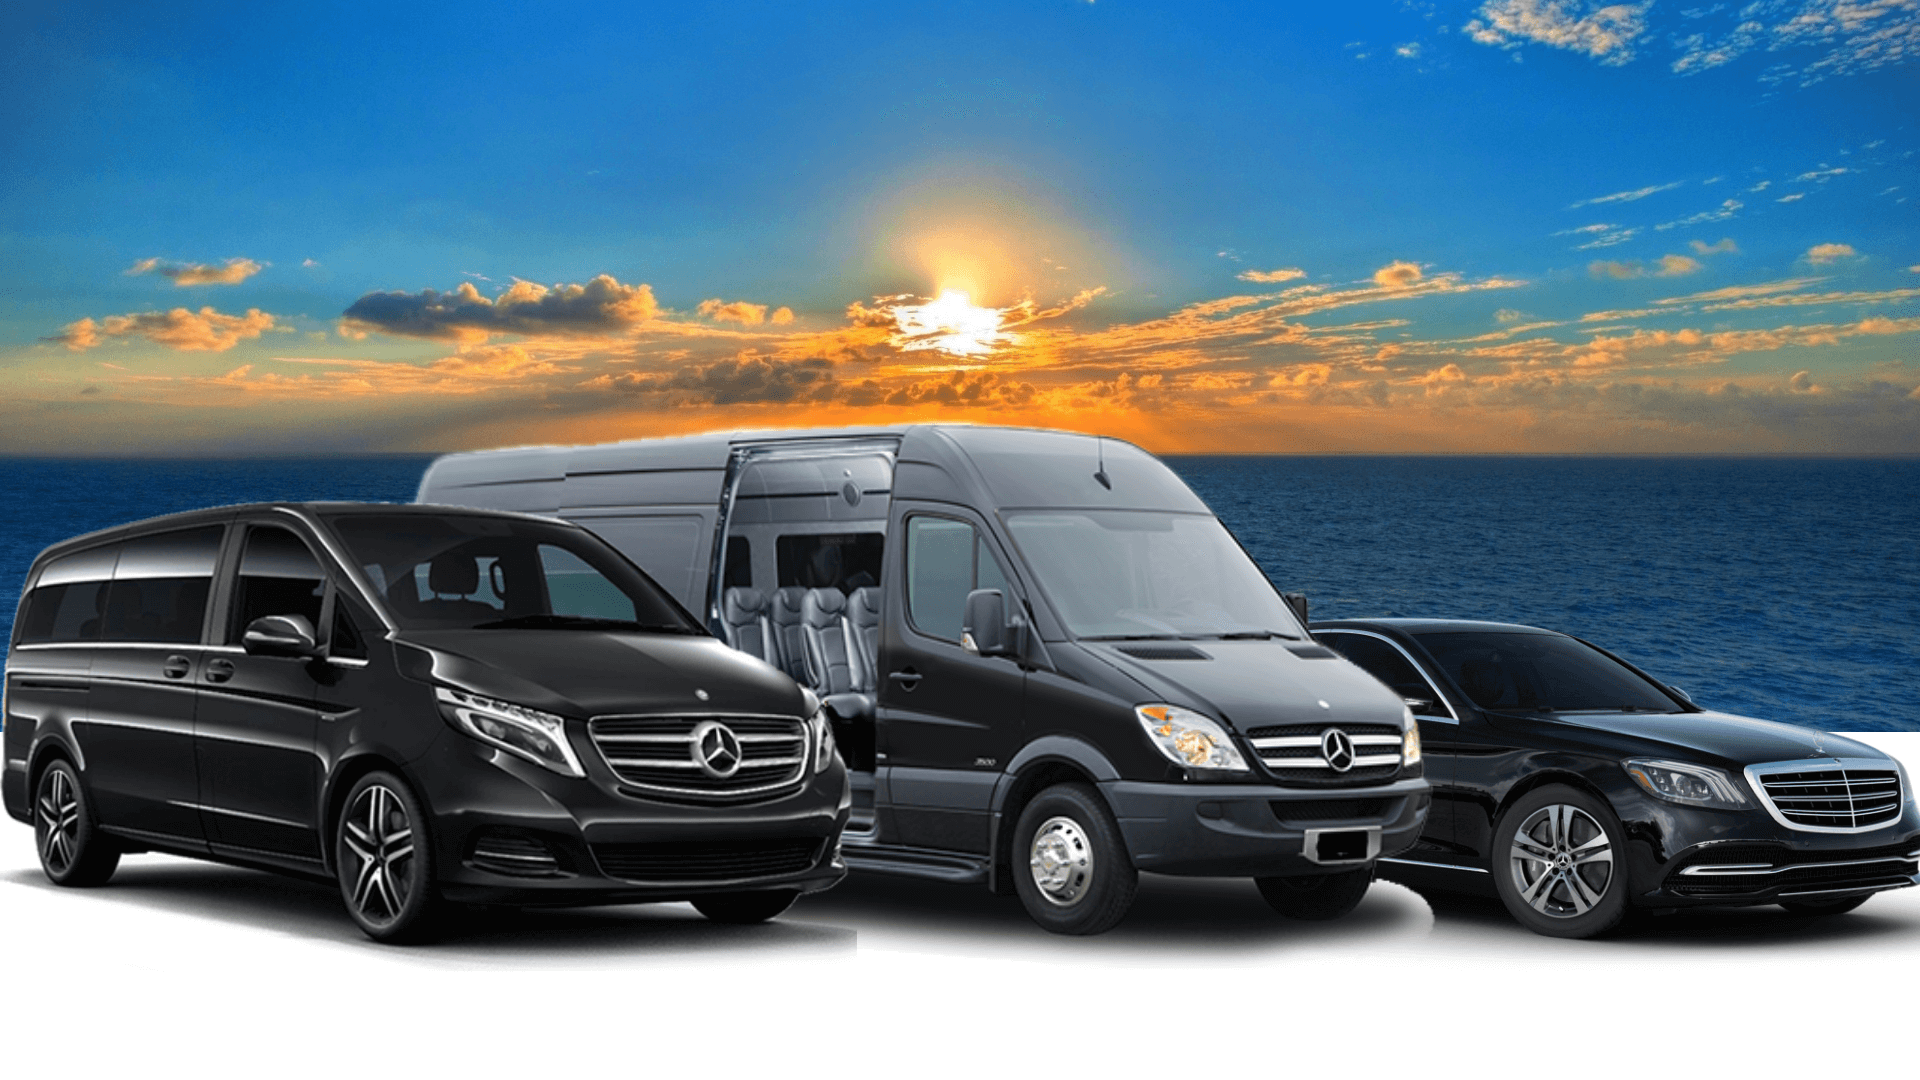 reserve one of this limousine, van or minibus by mercedes for basel river cruise transfers